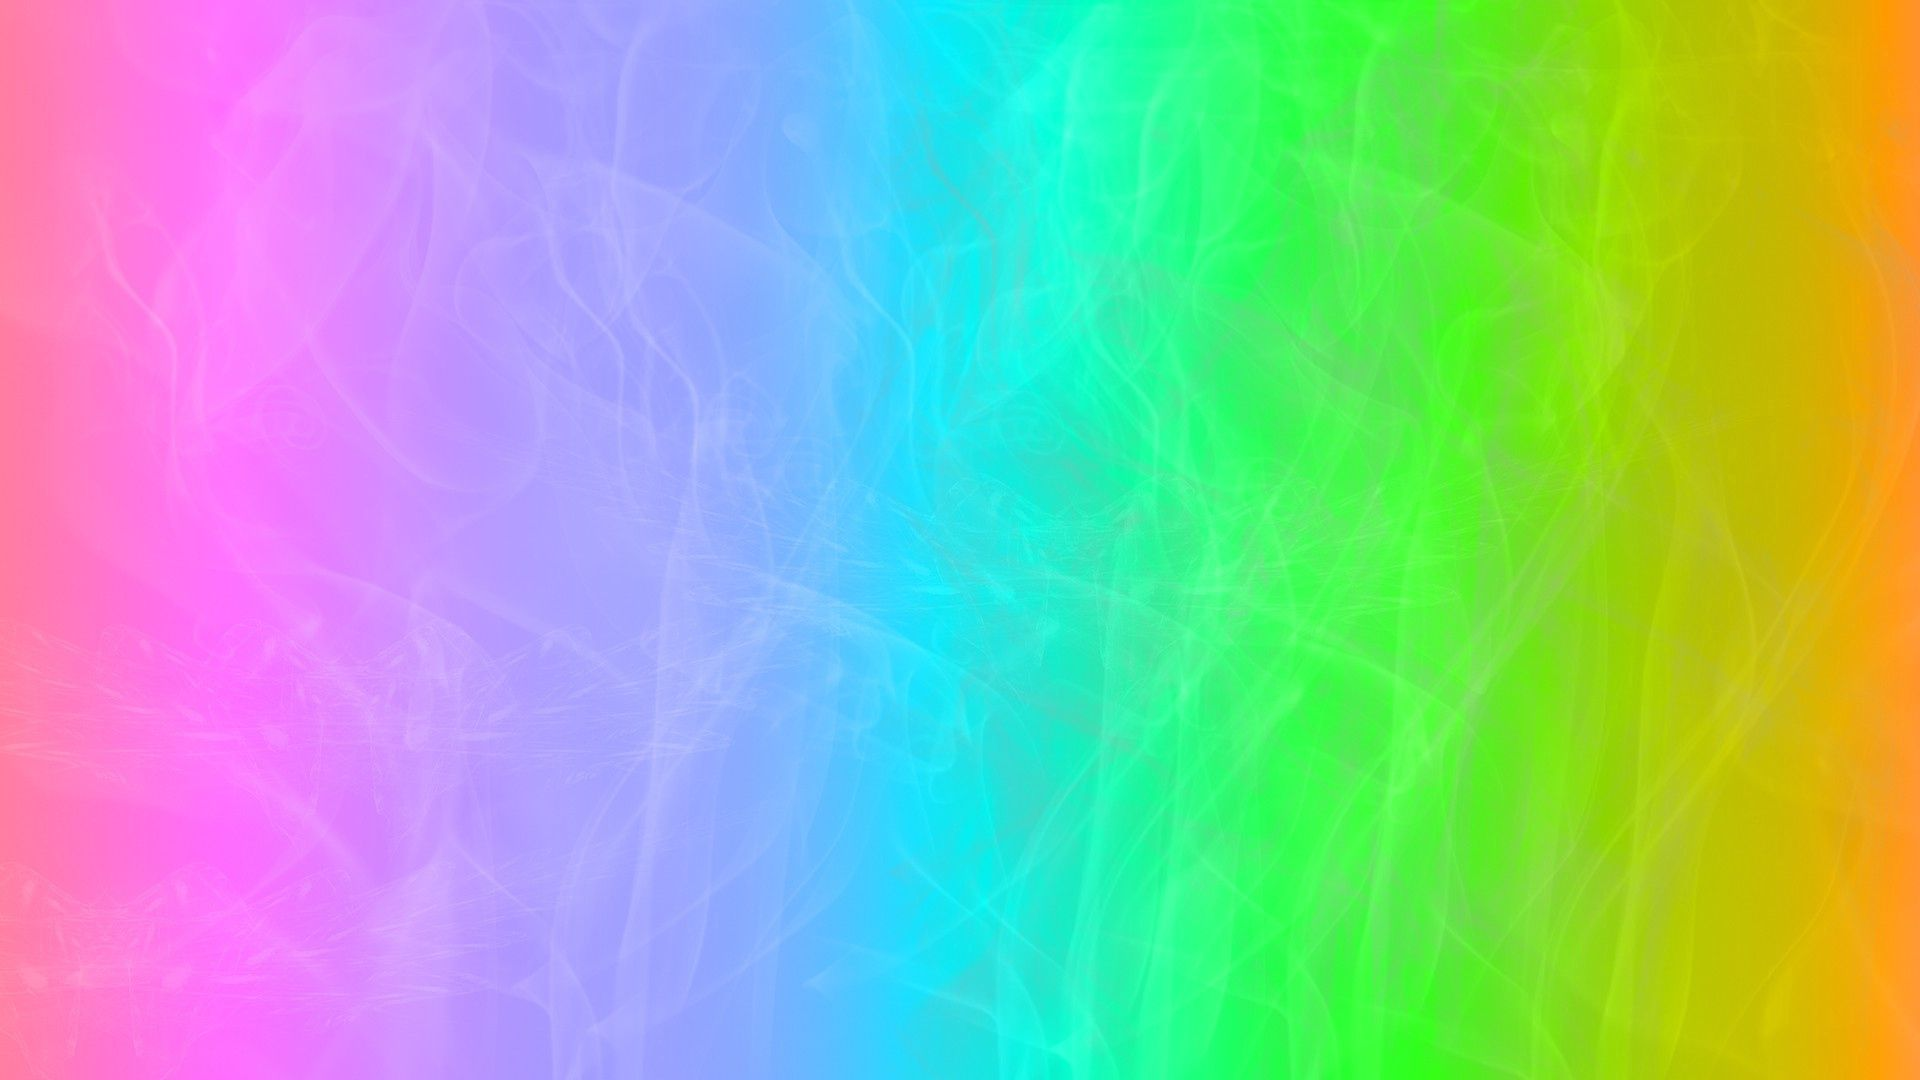 105093 download wallpaper Abstract, Glare, Color, Coloured, Bright, Colorful, Colourful, Background screensavers and pictures for free